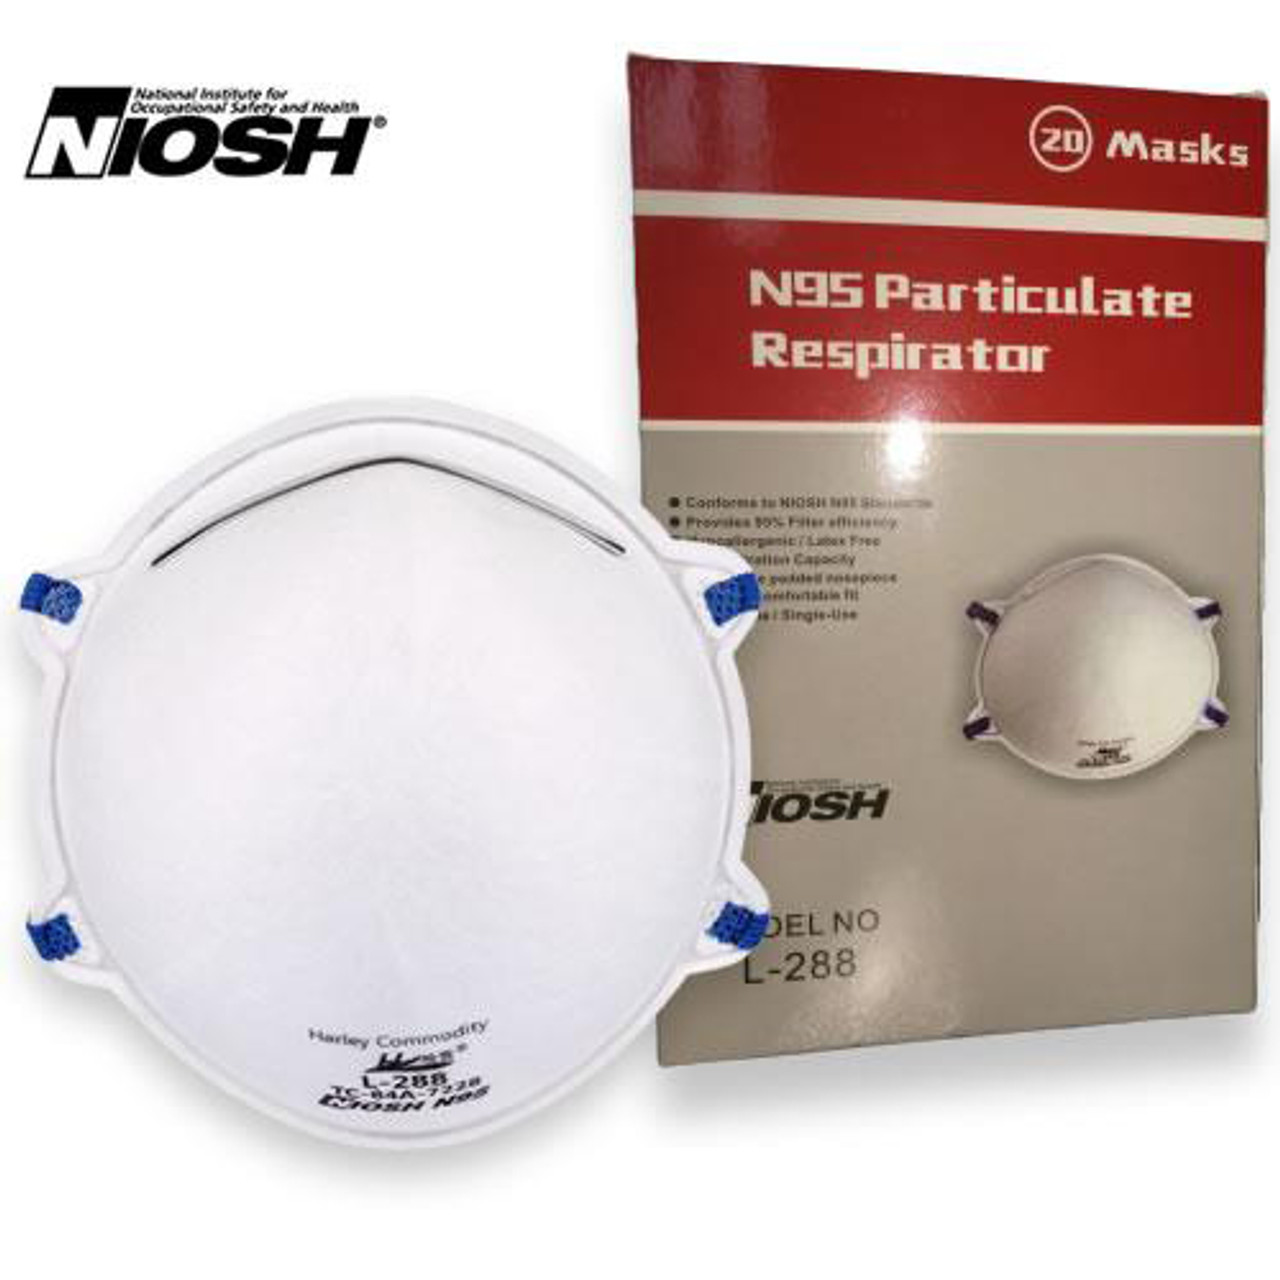 Harley L288 N95 face mask with box. This n95 mask is a cup/molded style face mask that is used to filter our airborne particles .3 microns and larger. It is rated by NIOSH to filter our 95% or more of those airborne particles.